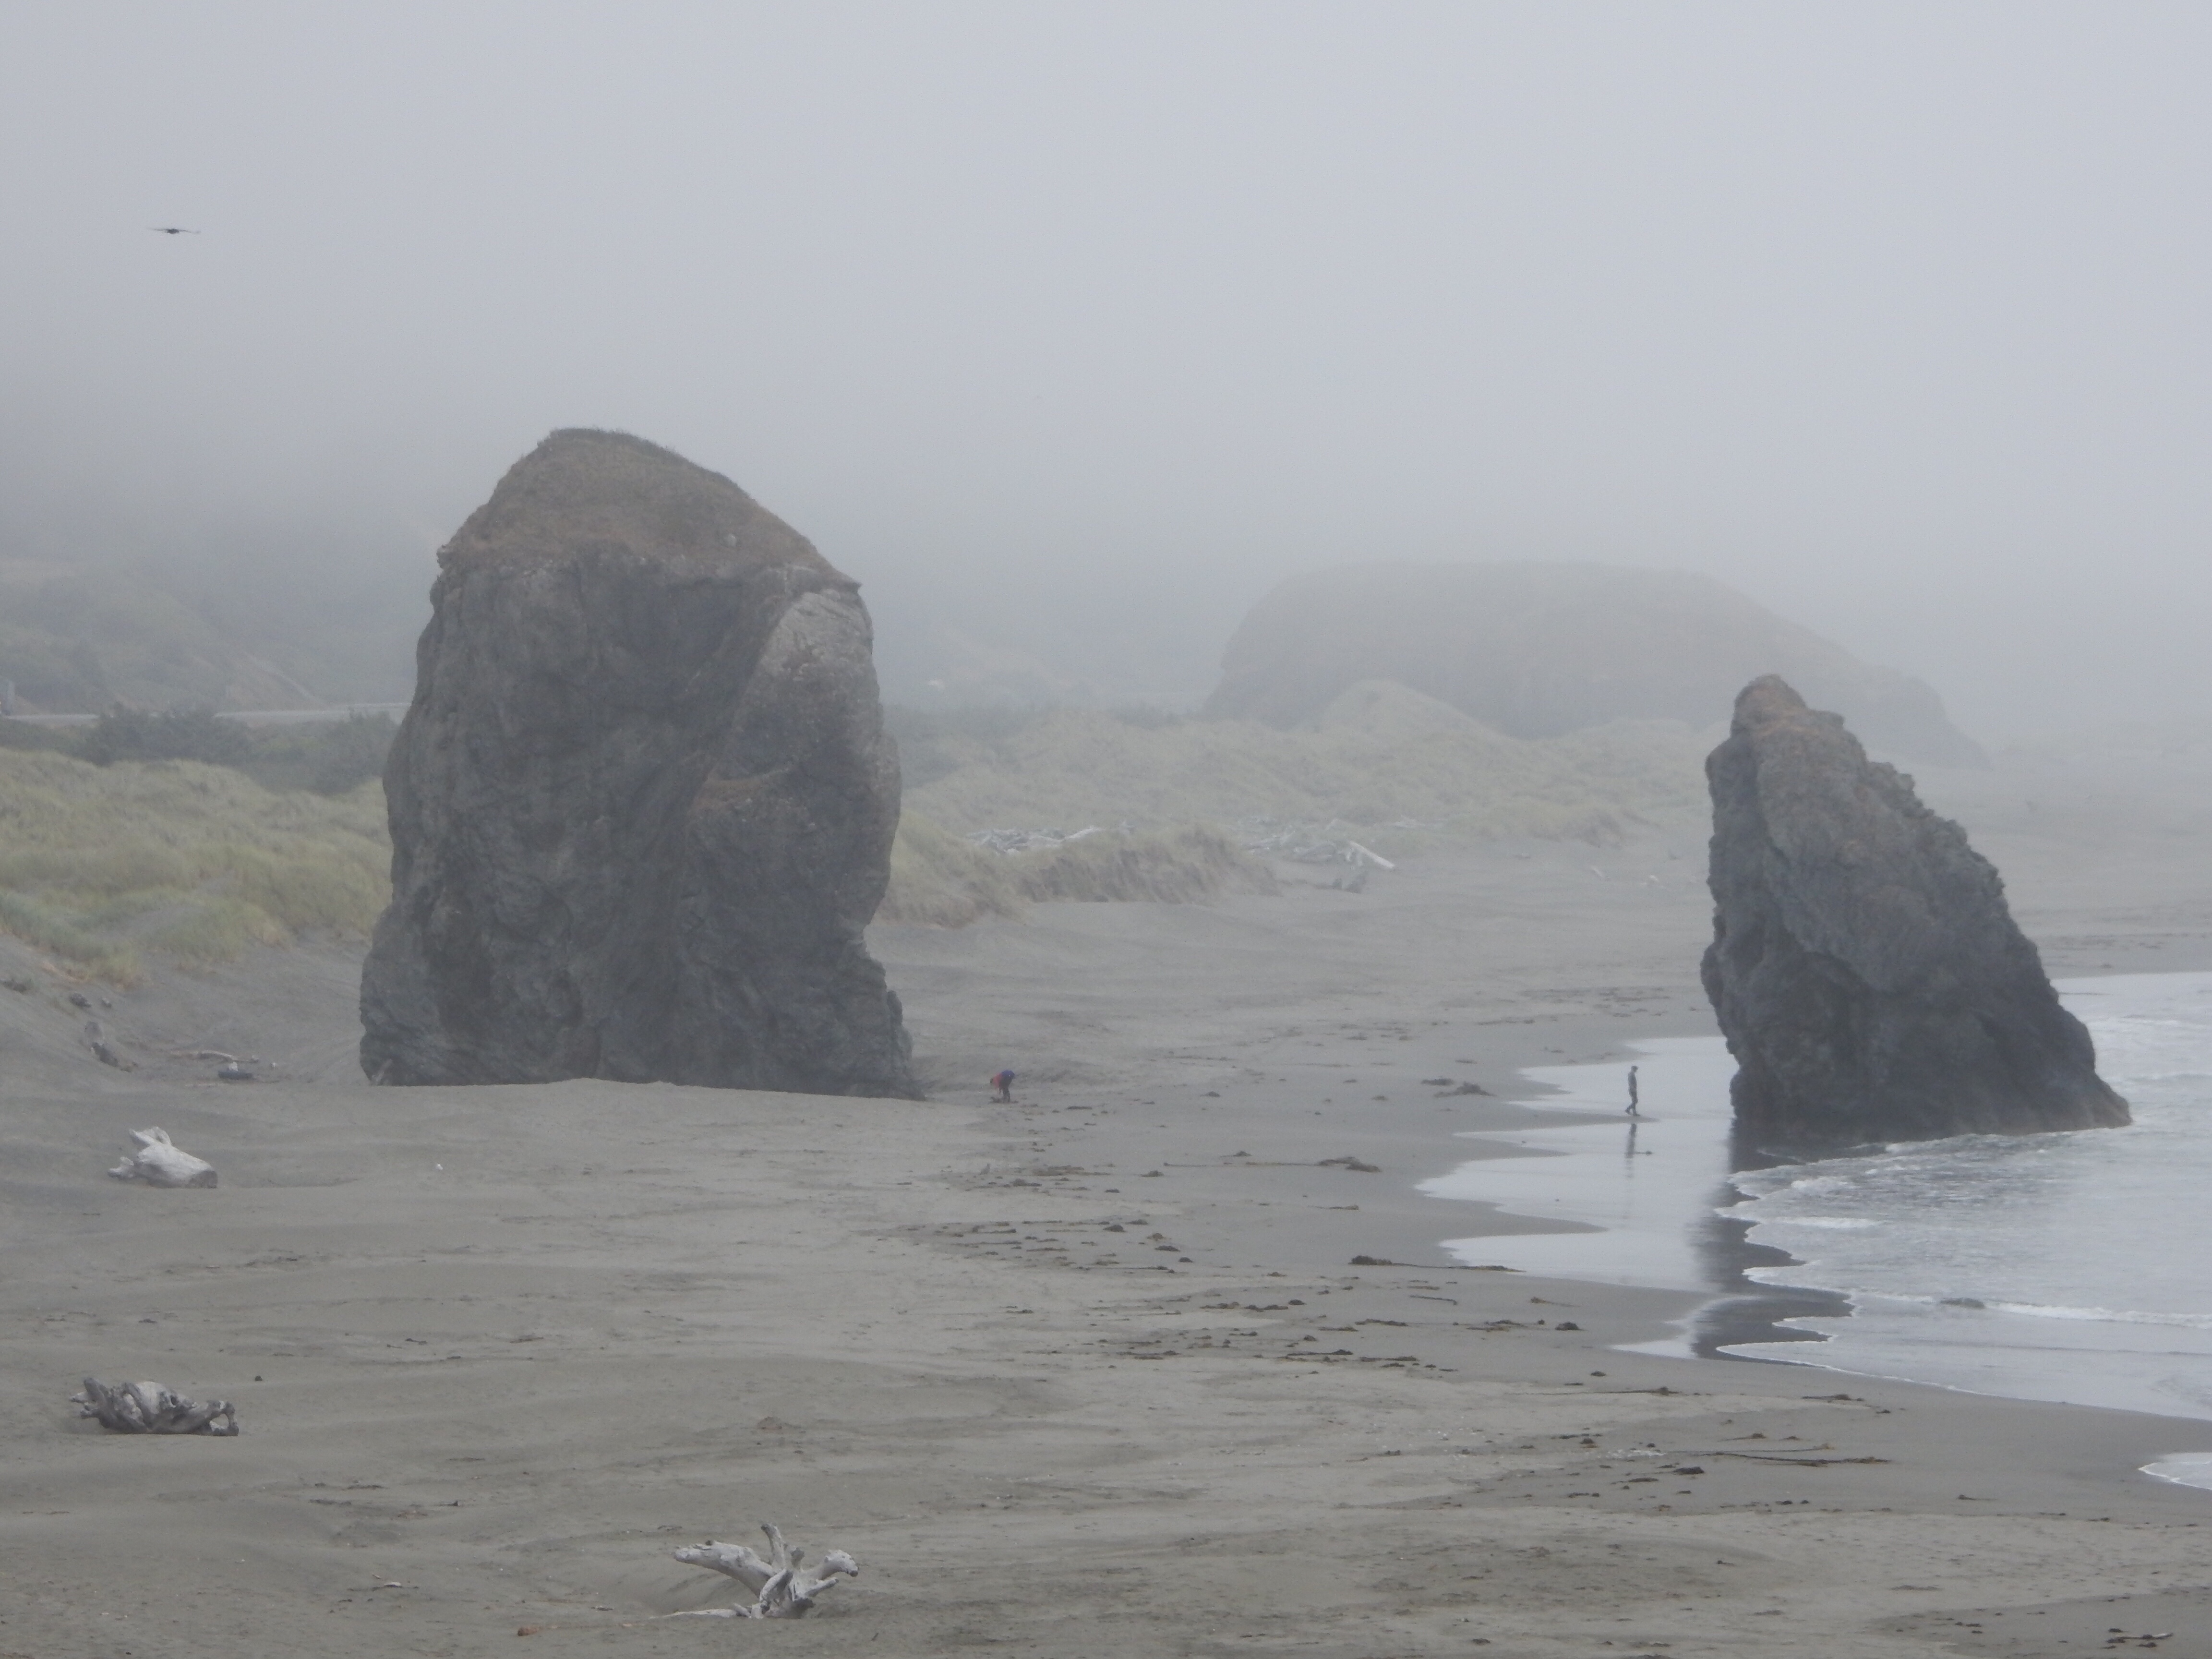 A closer view of a couple of coastal monoliths punctuate the beach just south of the mouth of Myers Creek. There is a person at the base of each monolith for scale.